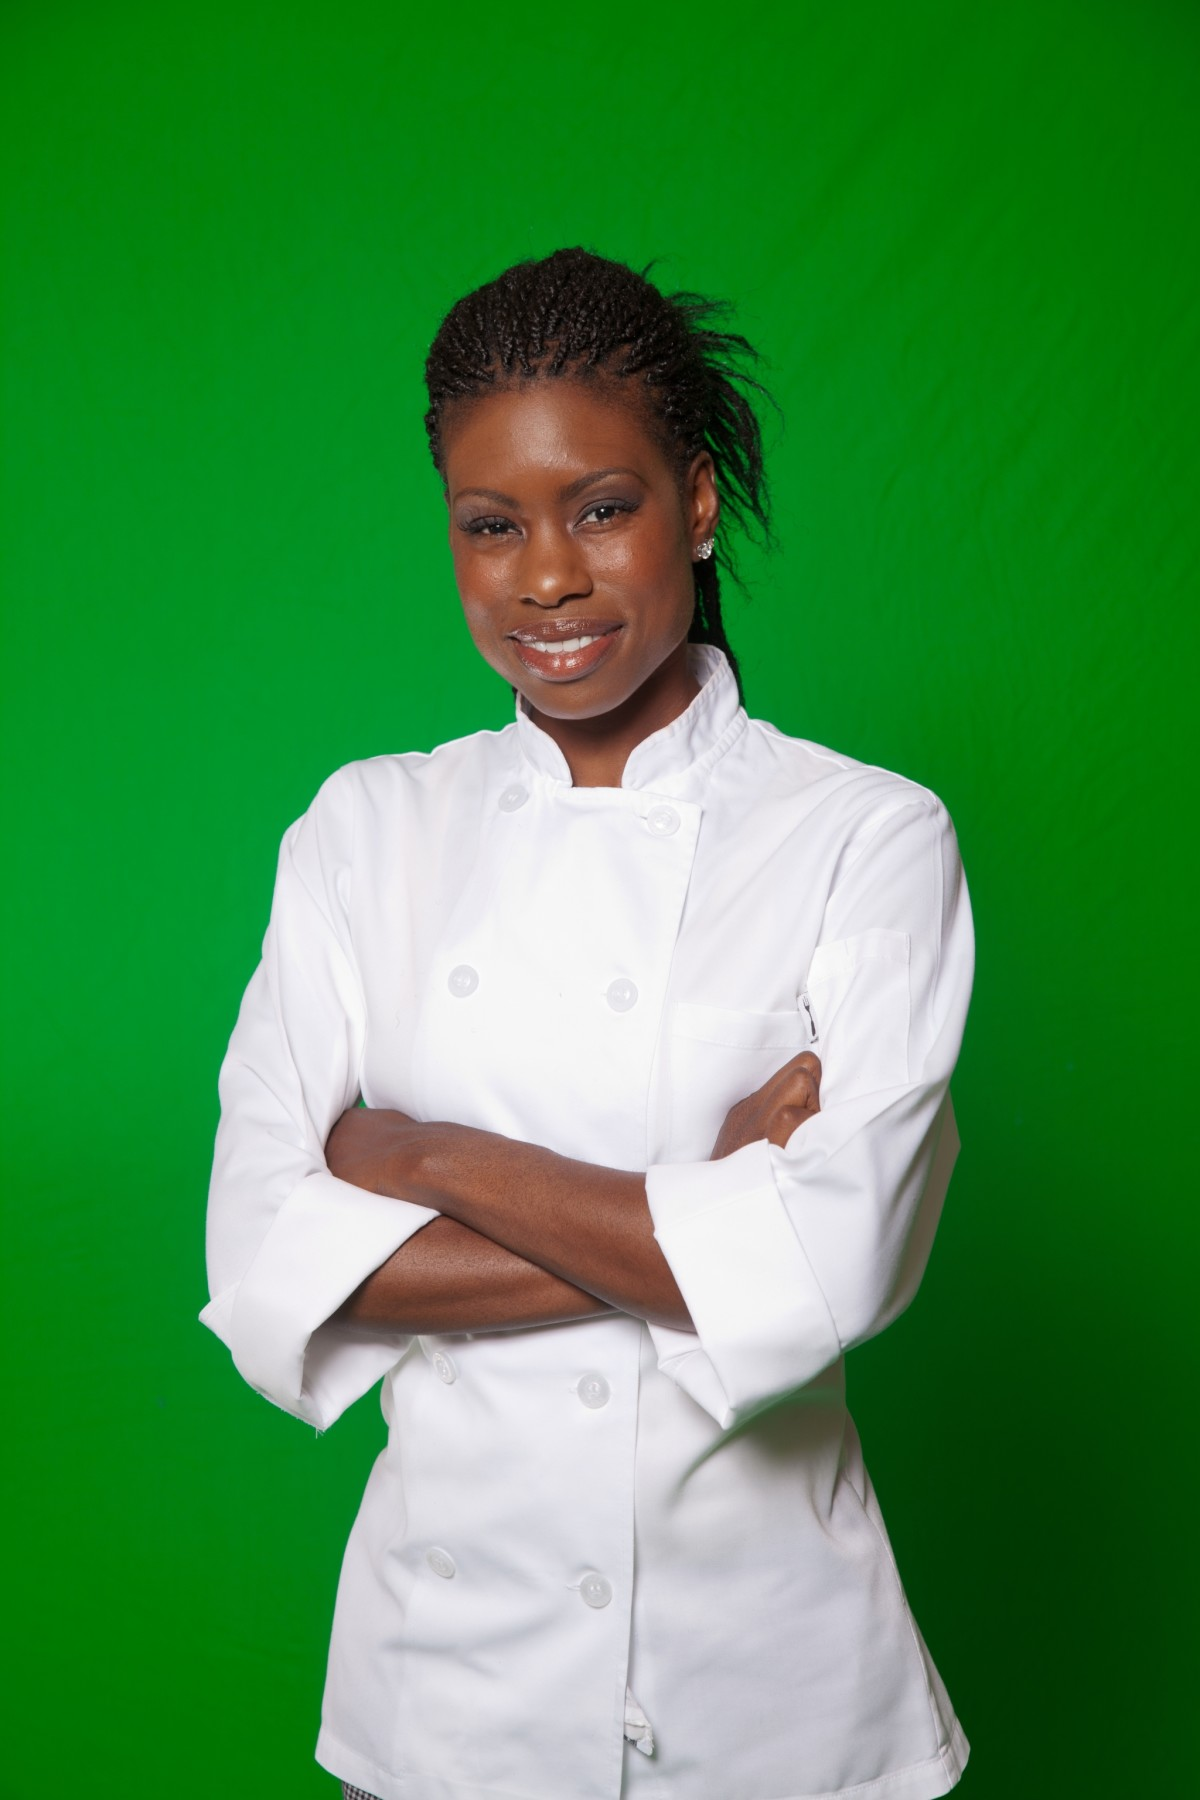 Stacey Dougan, owner and chef of Simply Pure in Las Vegas